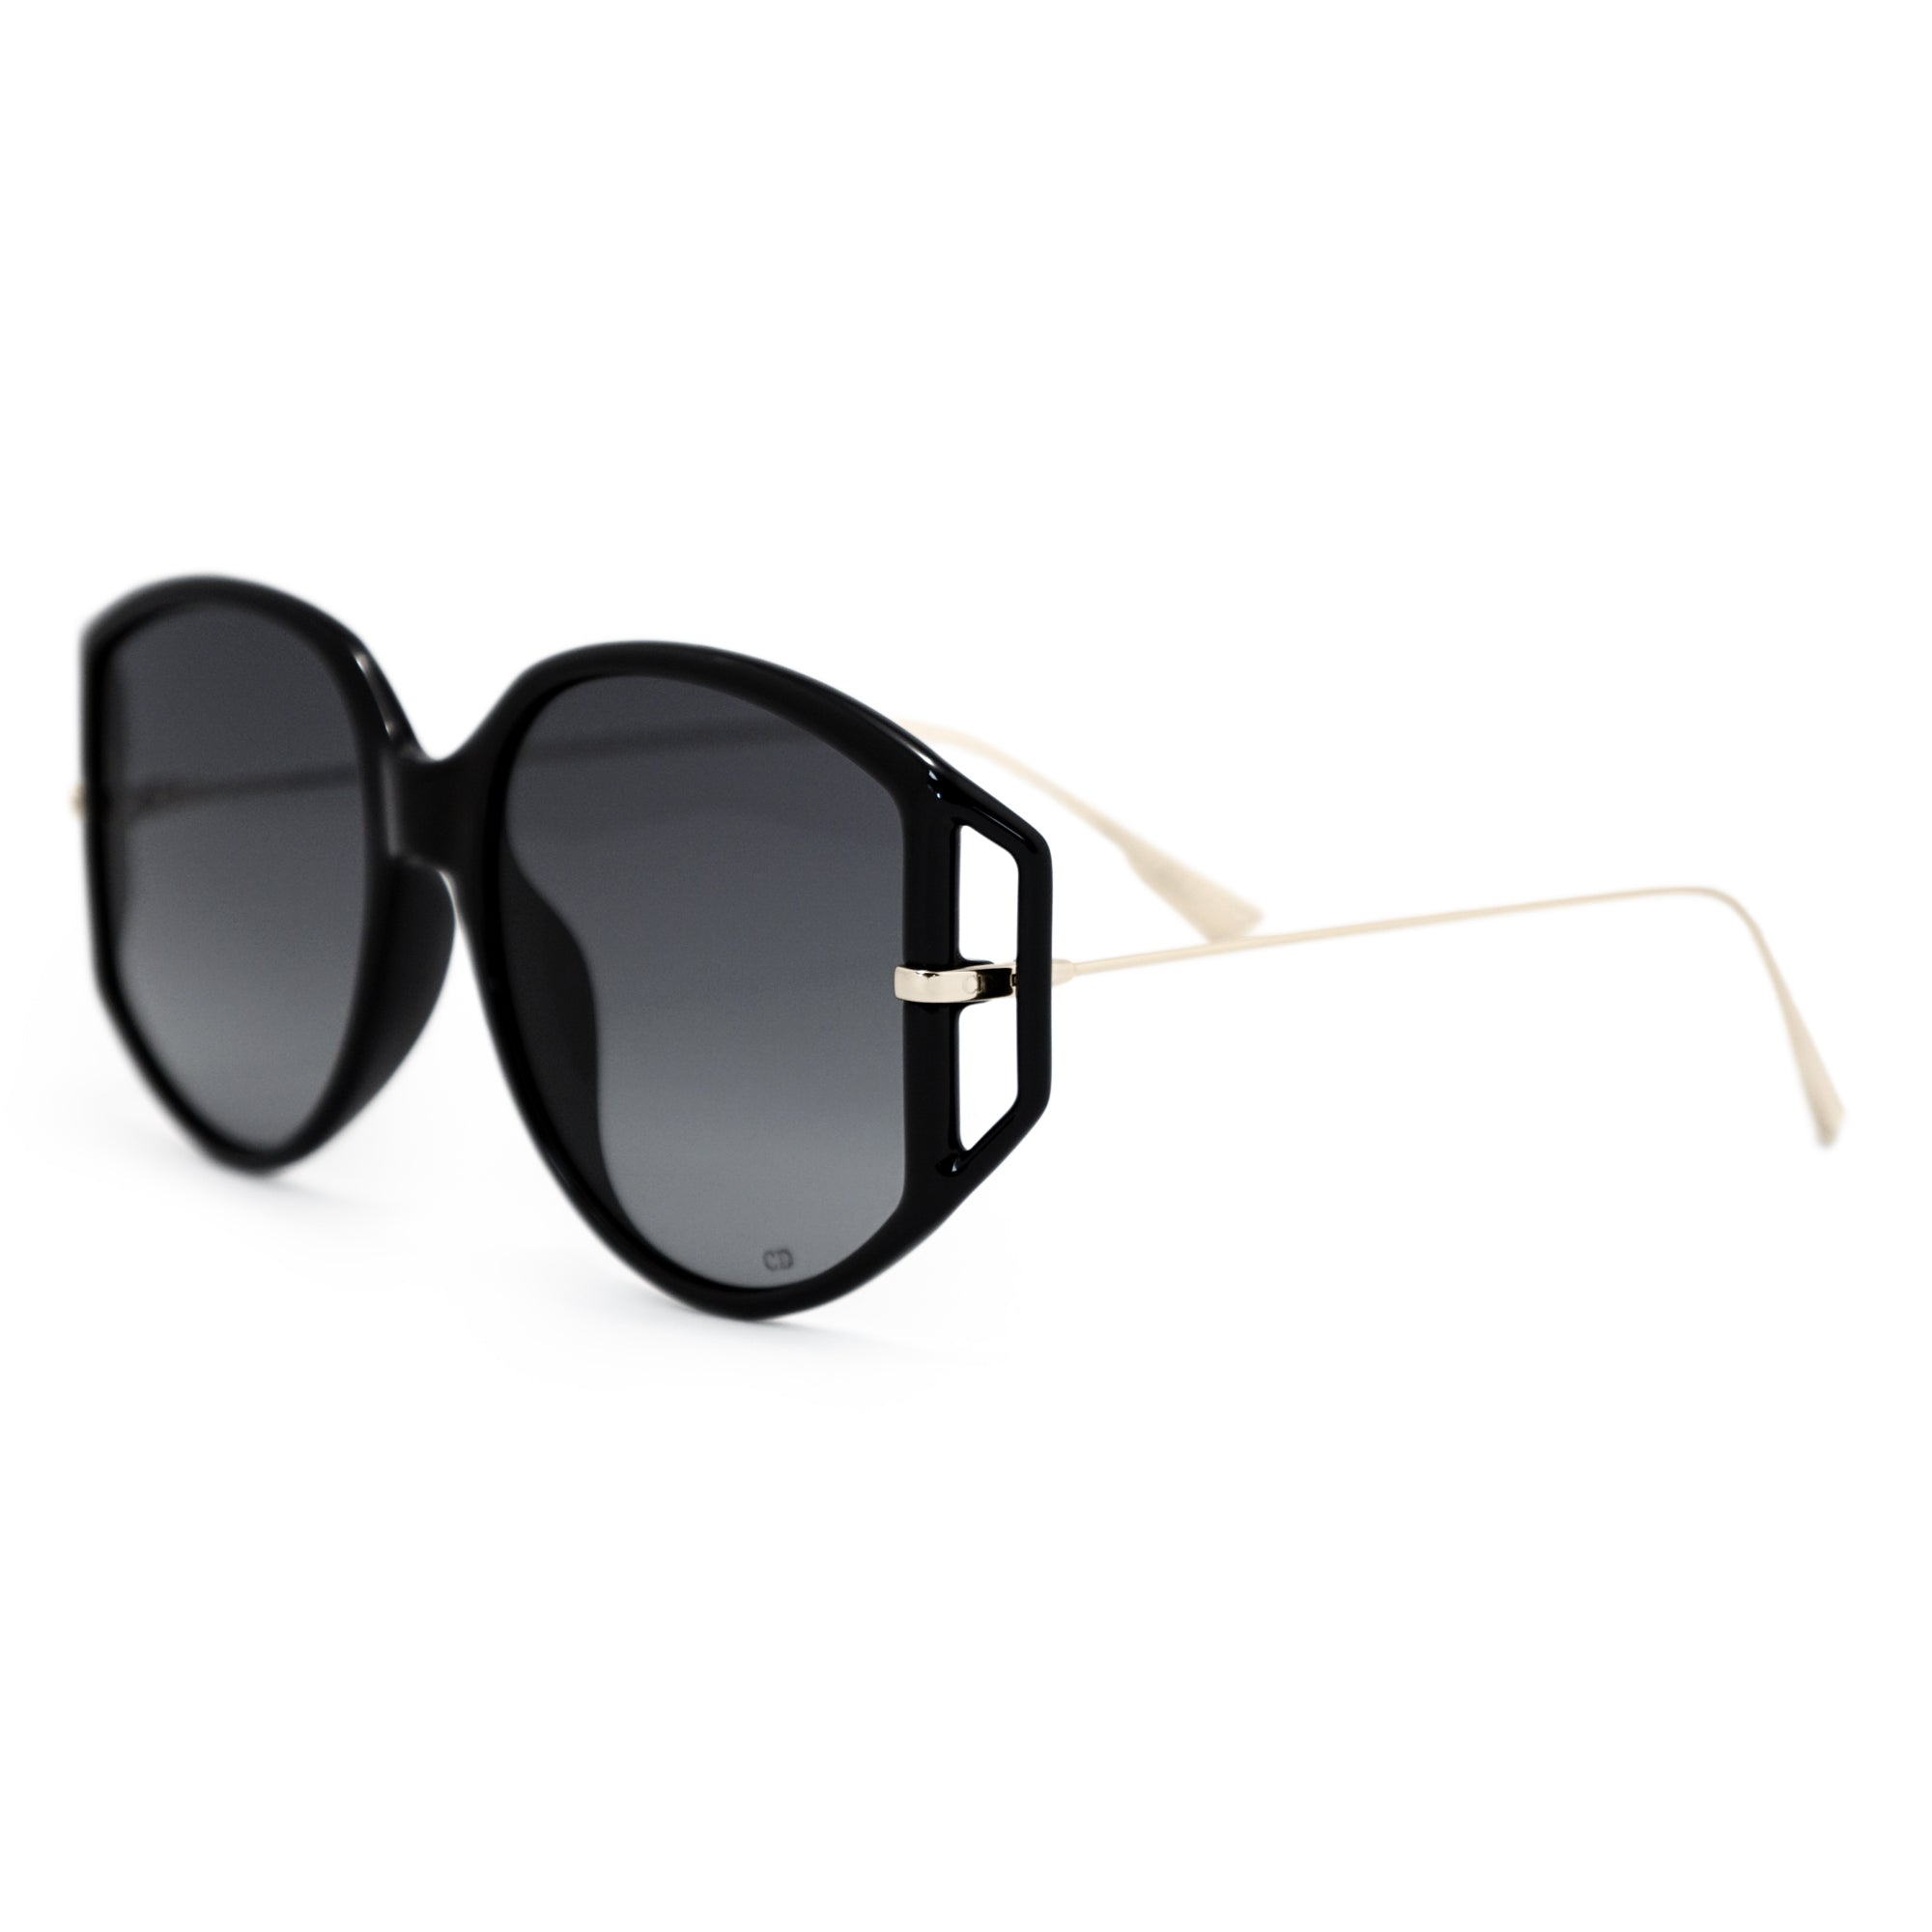 Christian Dior Full Rim Sunglasses Direction 2 8071I 54